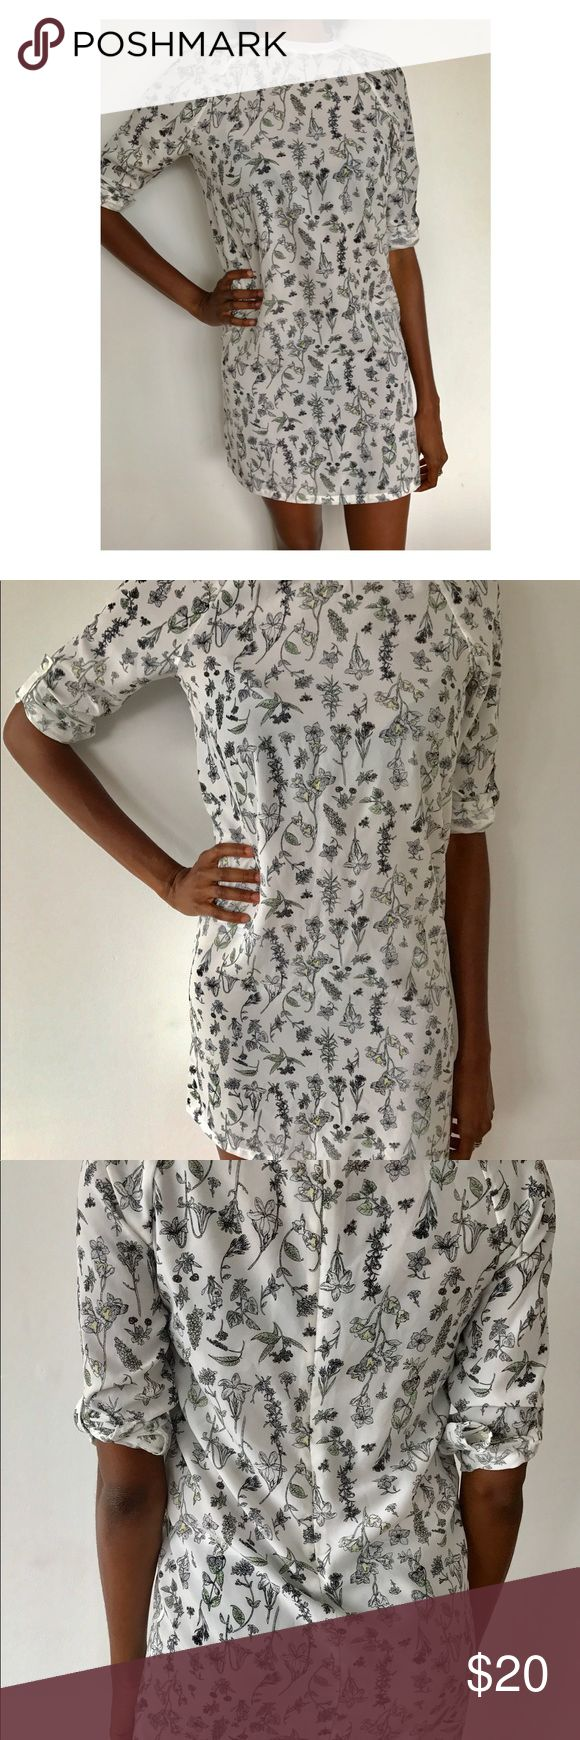 Joe Fresh Dress Floral Joe Fresh Dress. Never worn! Joe Fresh Dresses Mini